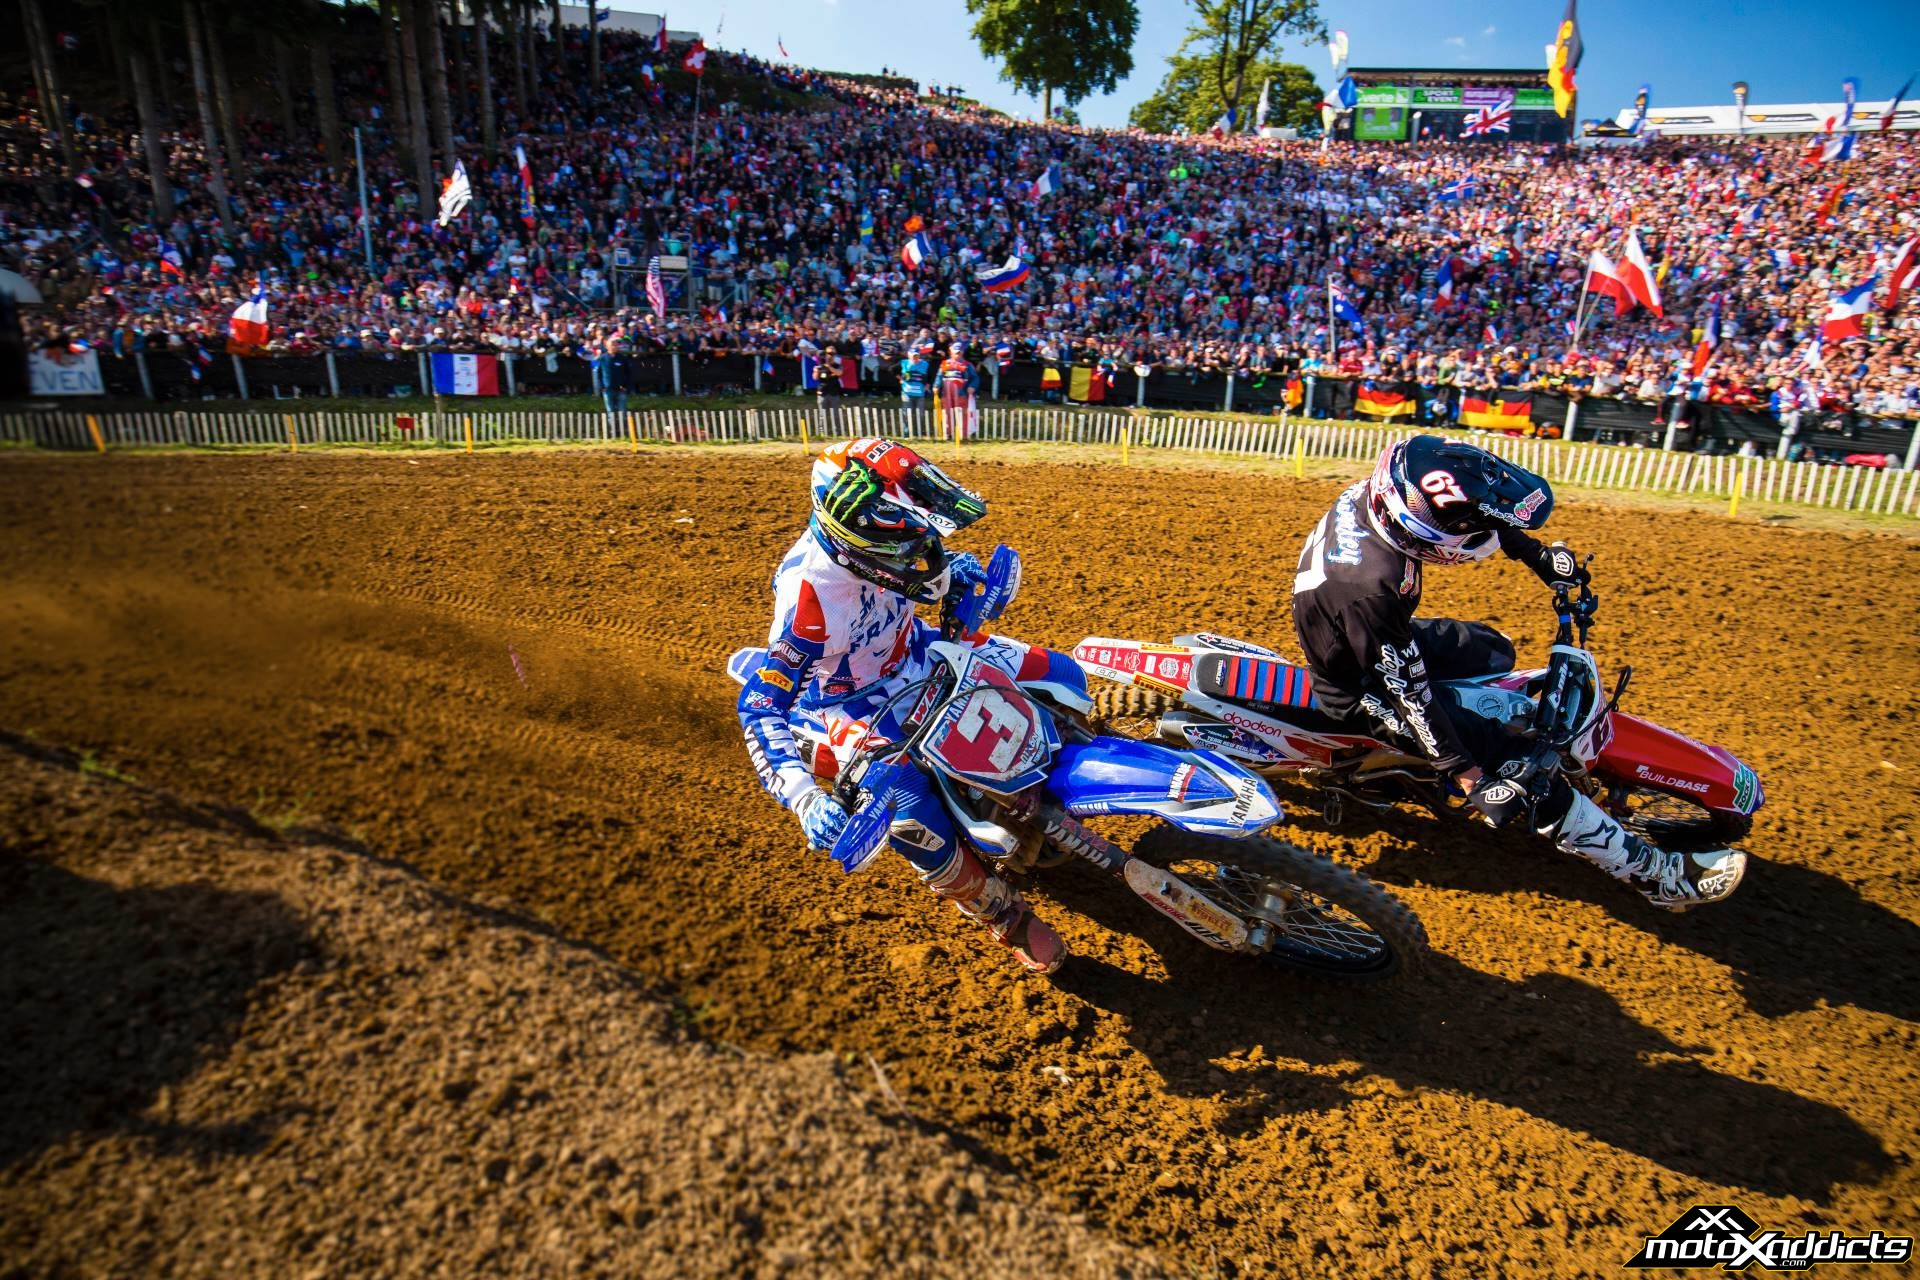 2015 MXoN - Romain Febve, Ben Townley